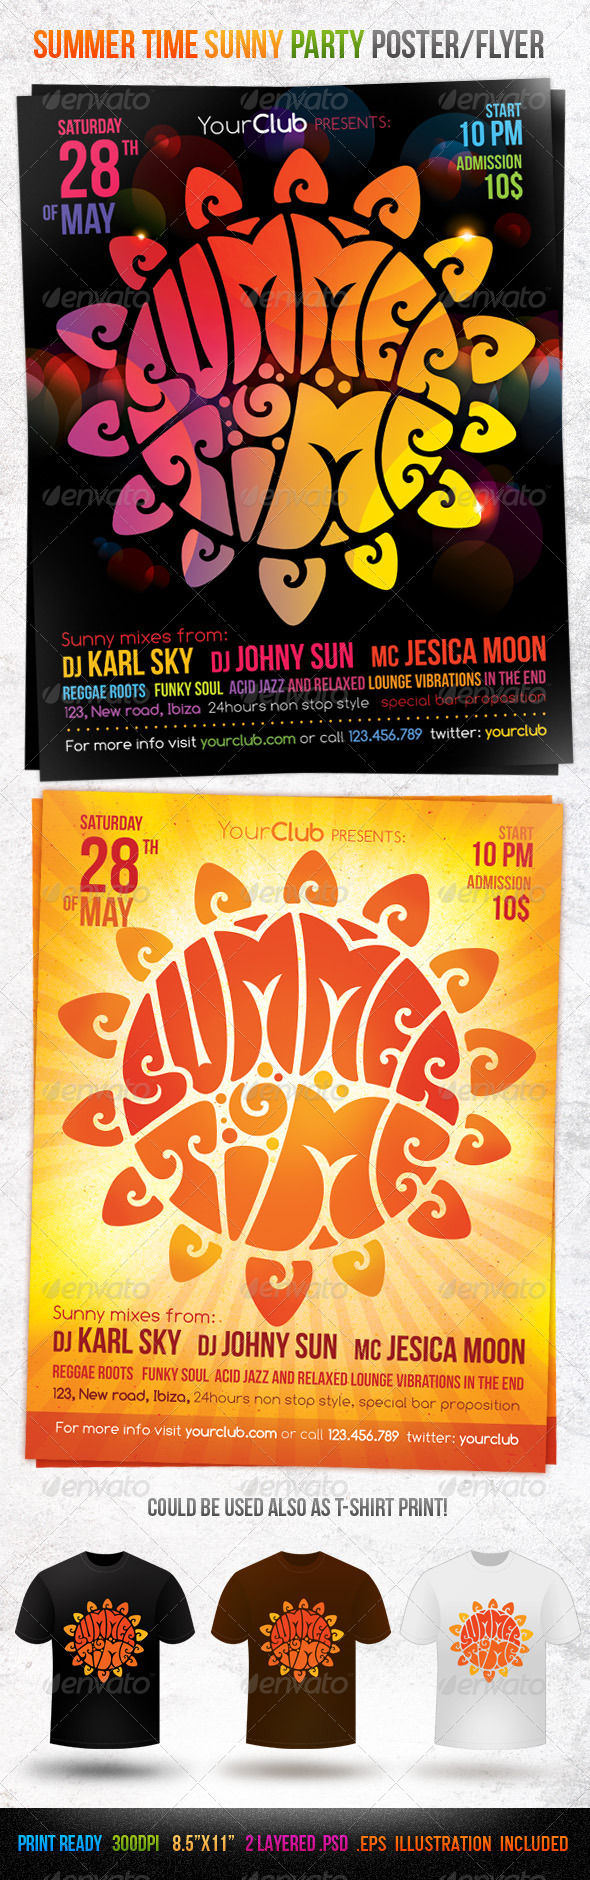 Summer Time Sunny Party Poster/Flyer - Clubs & Parties Events